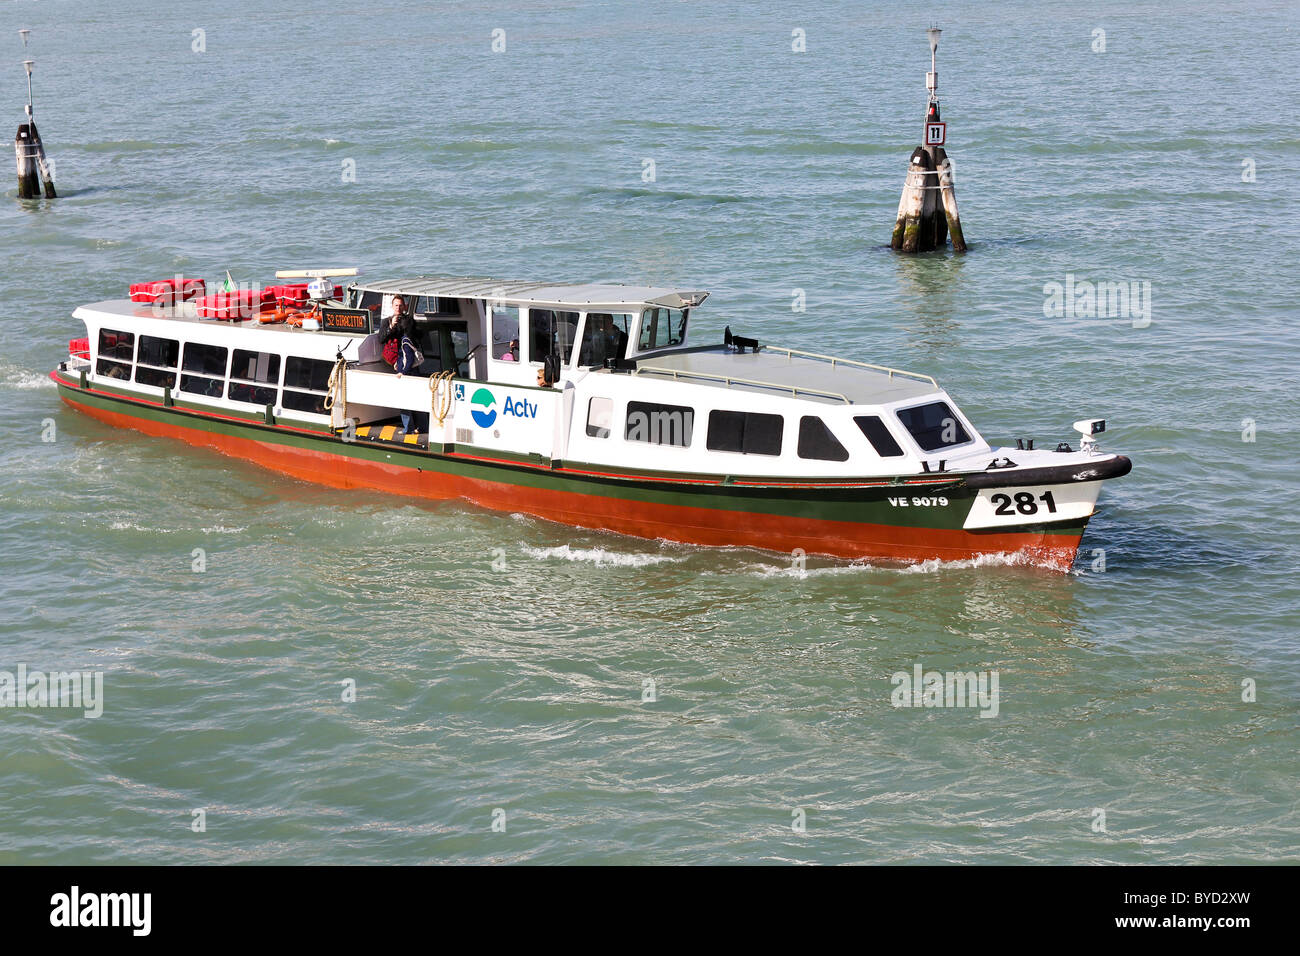 Vaporetto (boat bus) in Venice, Italy - Stock Image